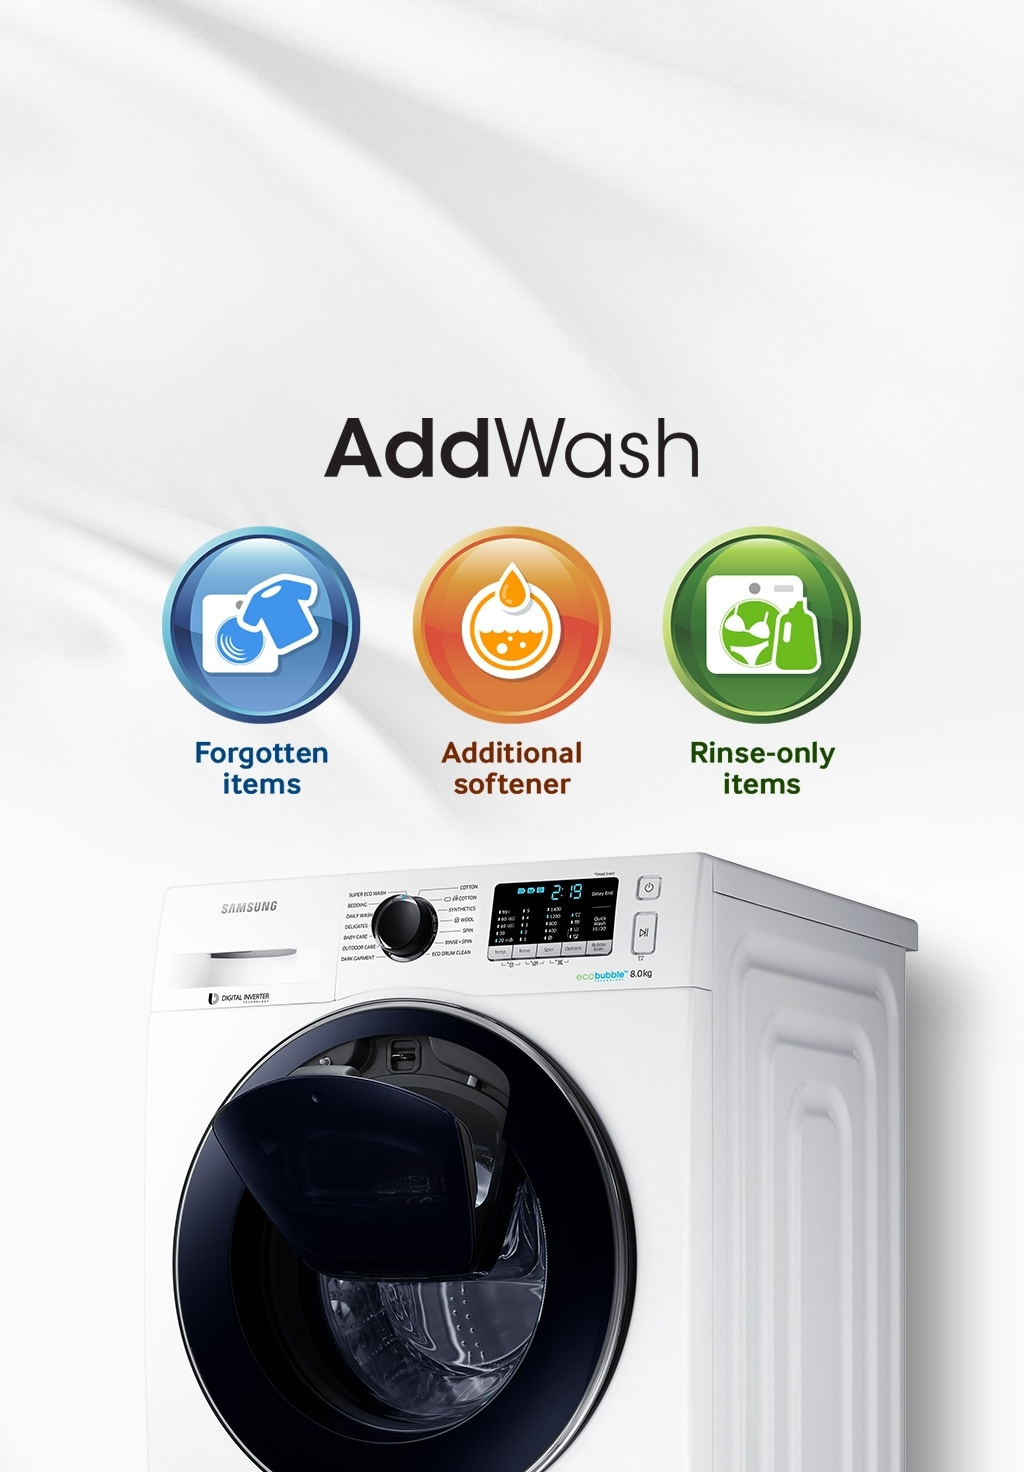 Simply add during wash.